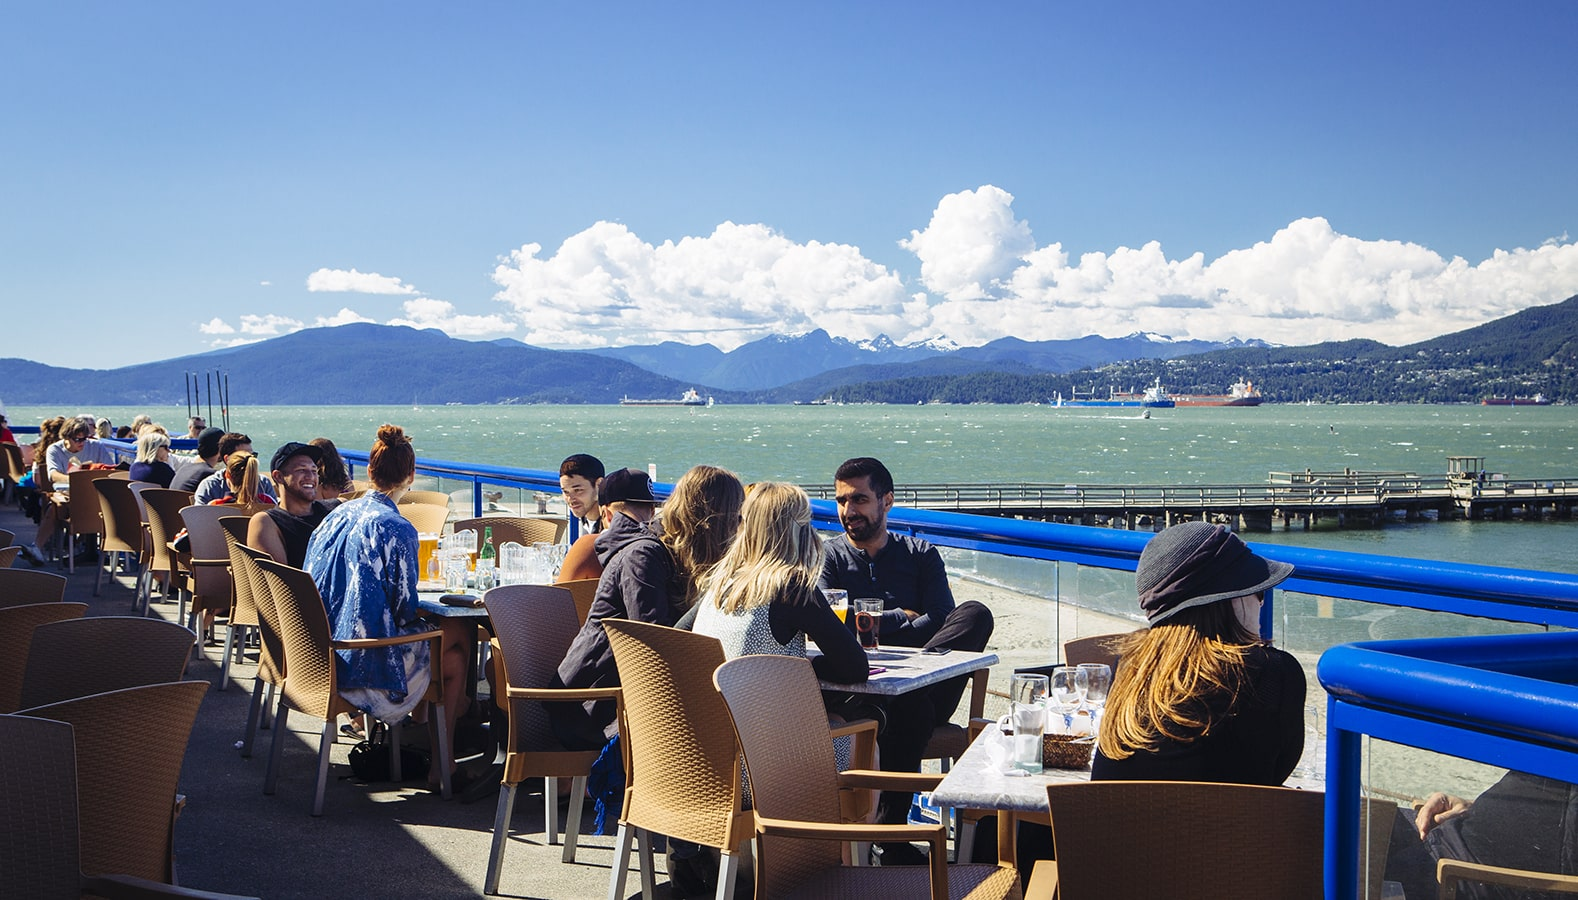 The Galley Patio & Grill | restaurant | 1300 Discovery St, Vancouver, BC V6R 4K5, Canada | 6042221331 OR +1 604-222-1331